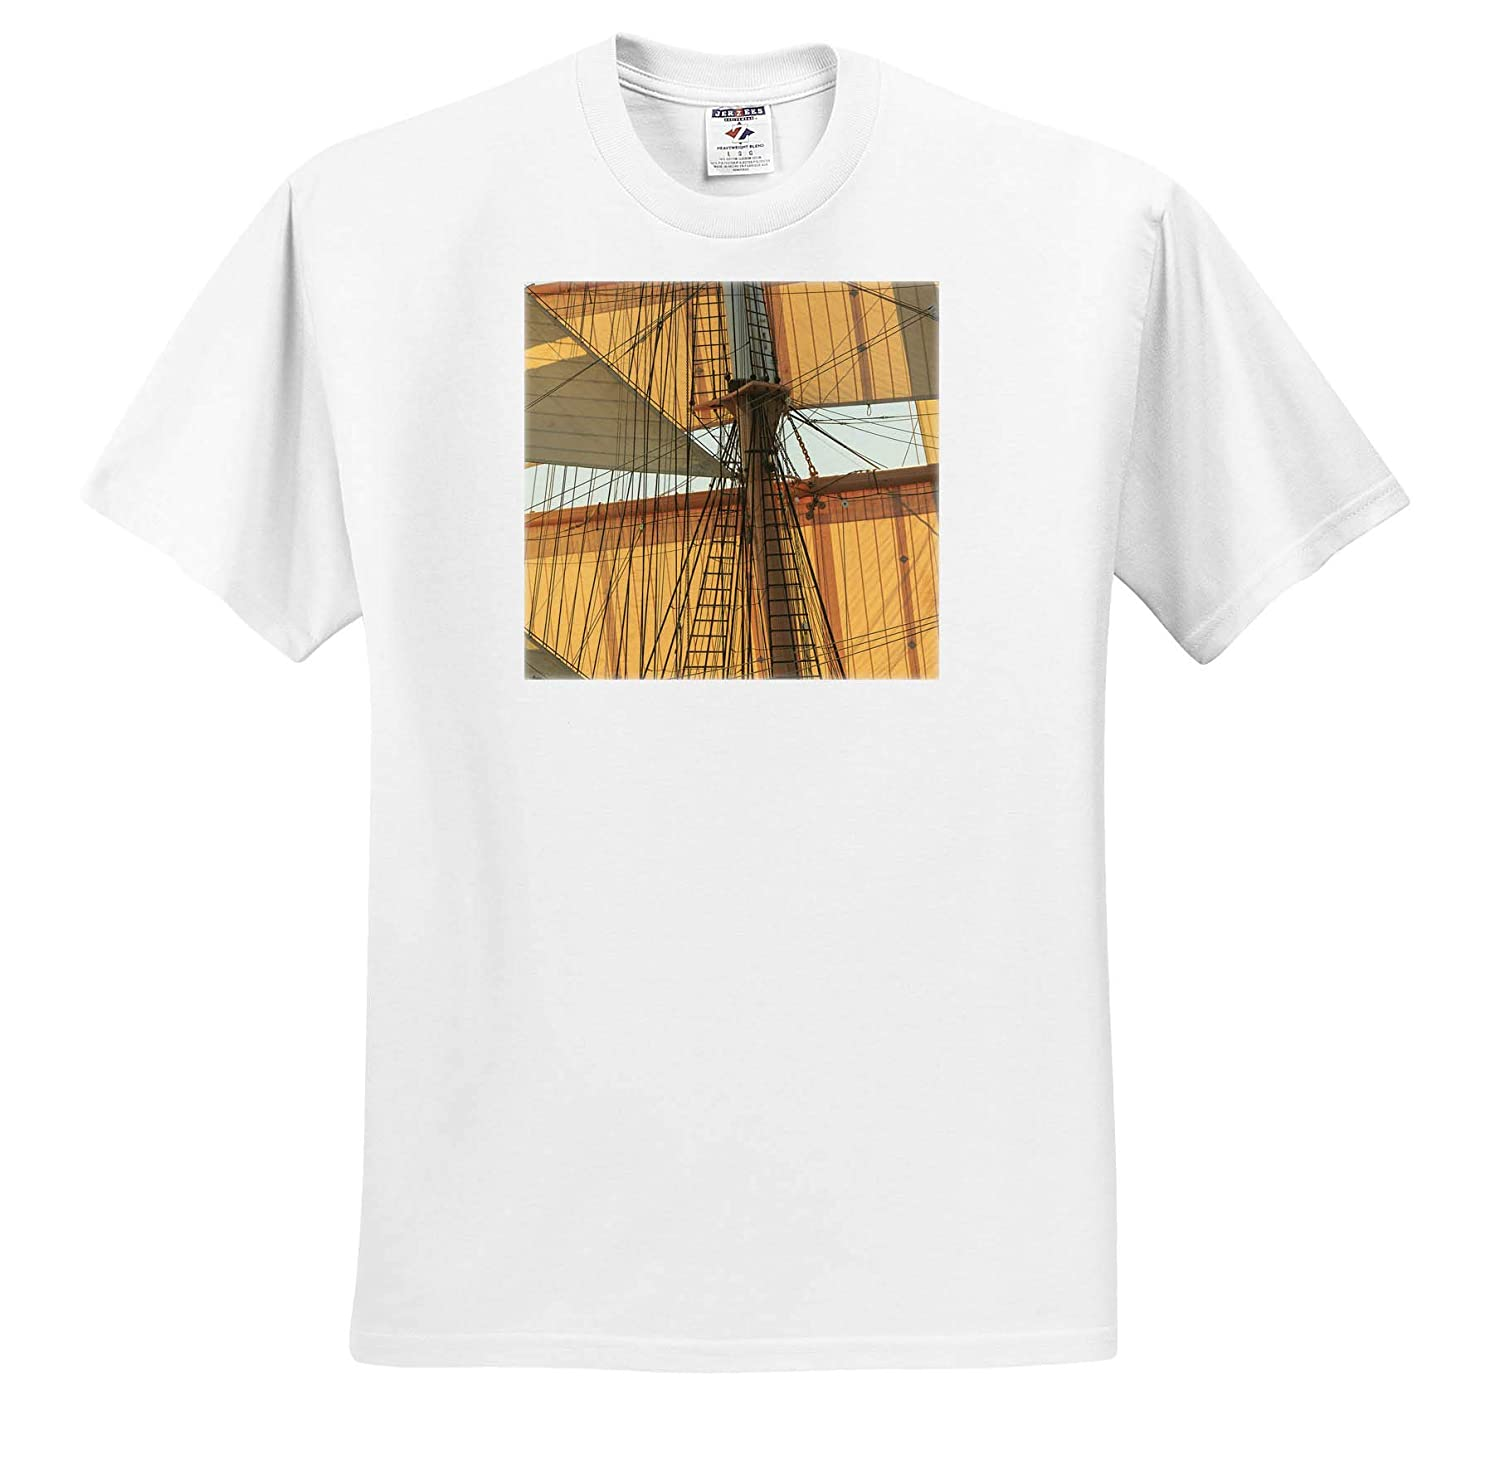 Sails and Rigging View of a 90 Foot Sailing Yacht 3dRose Danita Delimont ts/_314723 Sailboats Adult T-Shirt XL